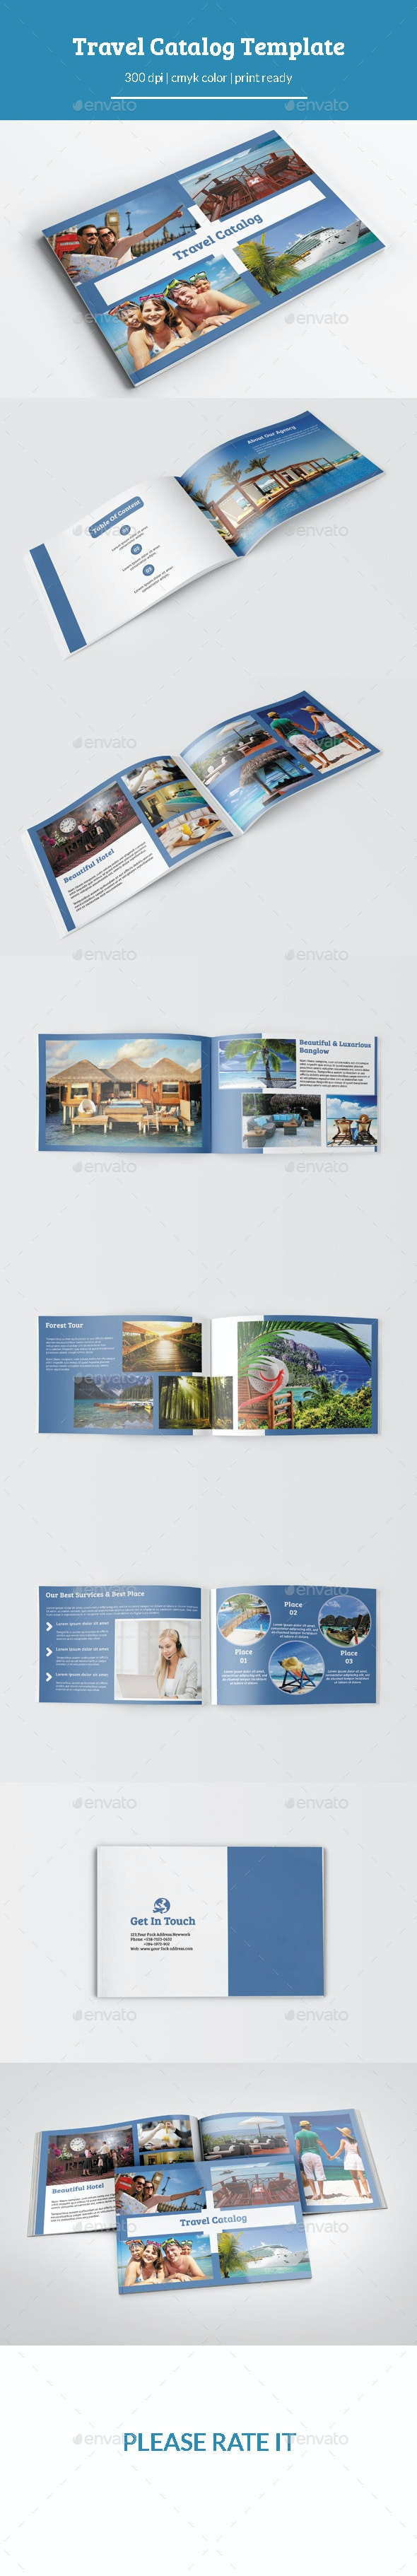 Travel Catalog/Brochure Template - Catalogs Brochures